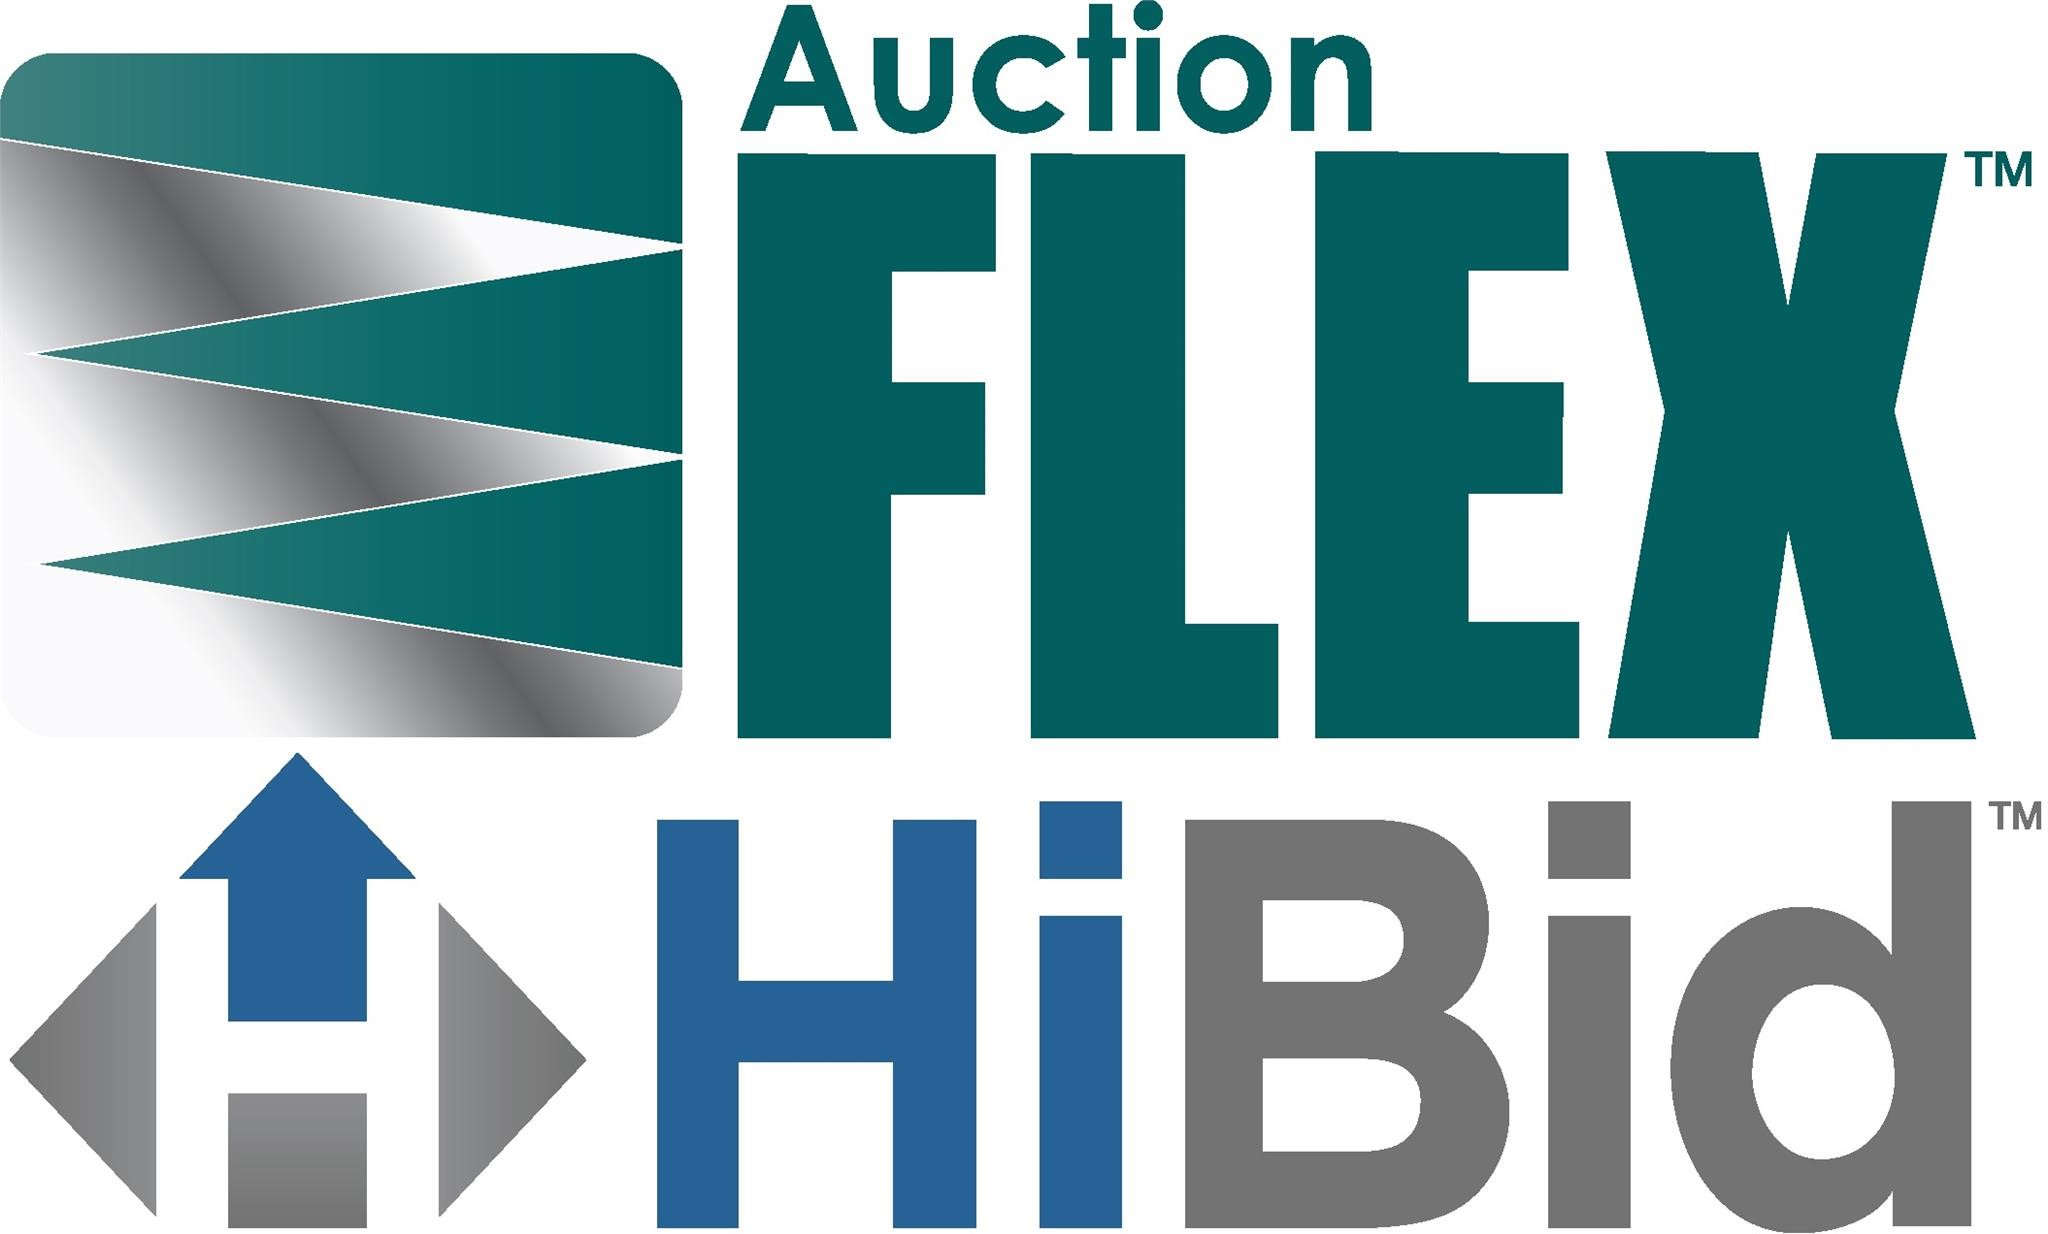 Sandhills Publishing The Tech Company Behind Auction Flex Hibid Auctiontime And Equipmentfacts Will Host An Auctioneer Forum On December 19th